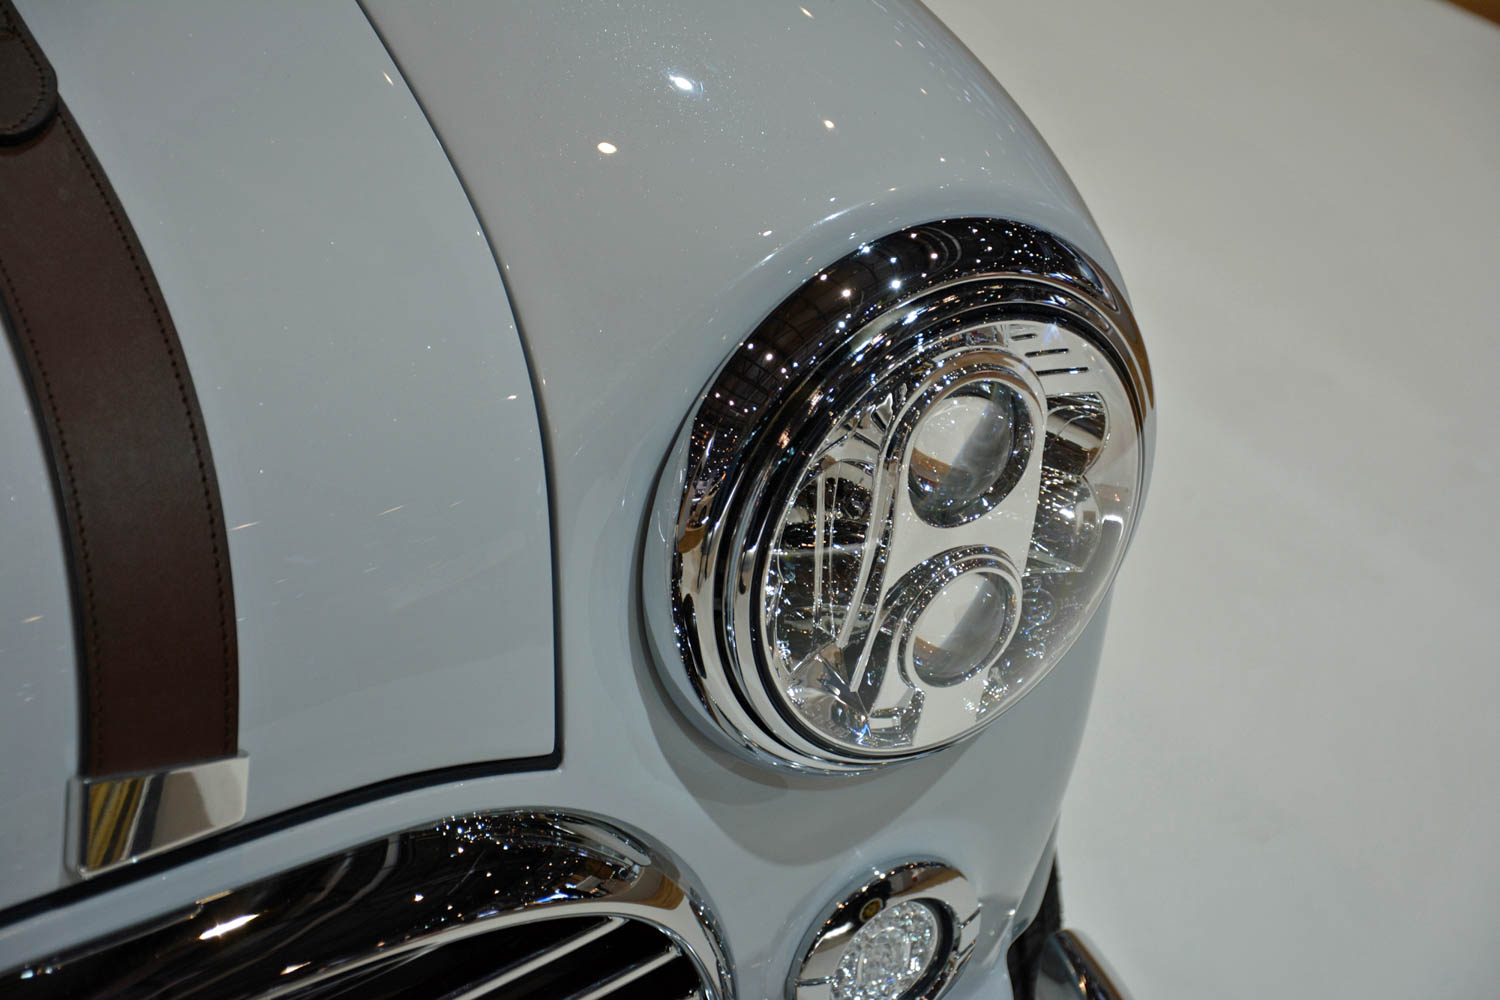 David Brown Automotive Mini Remastered headlight detail